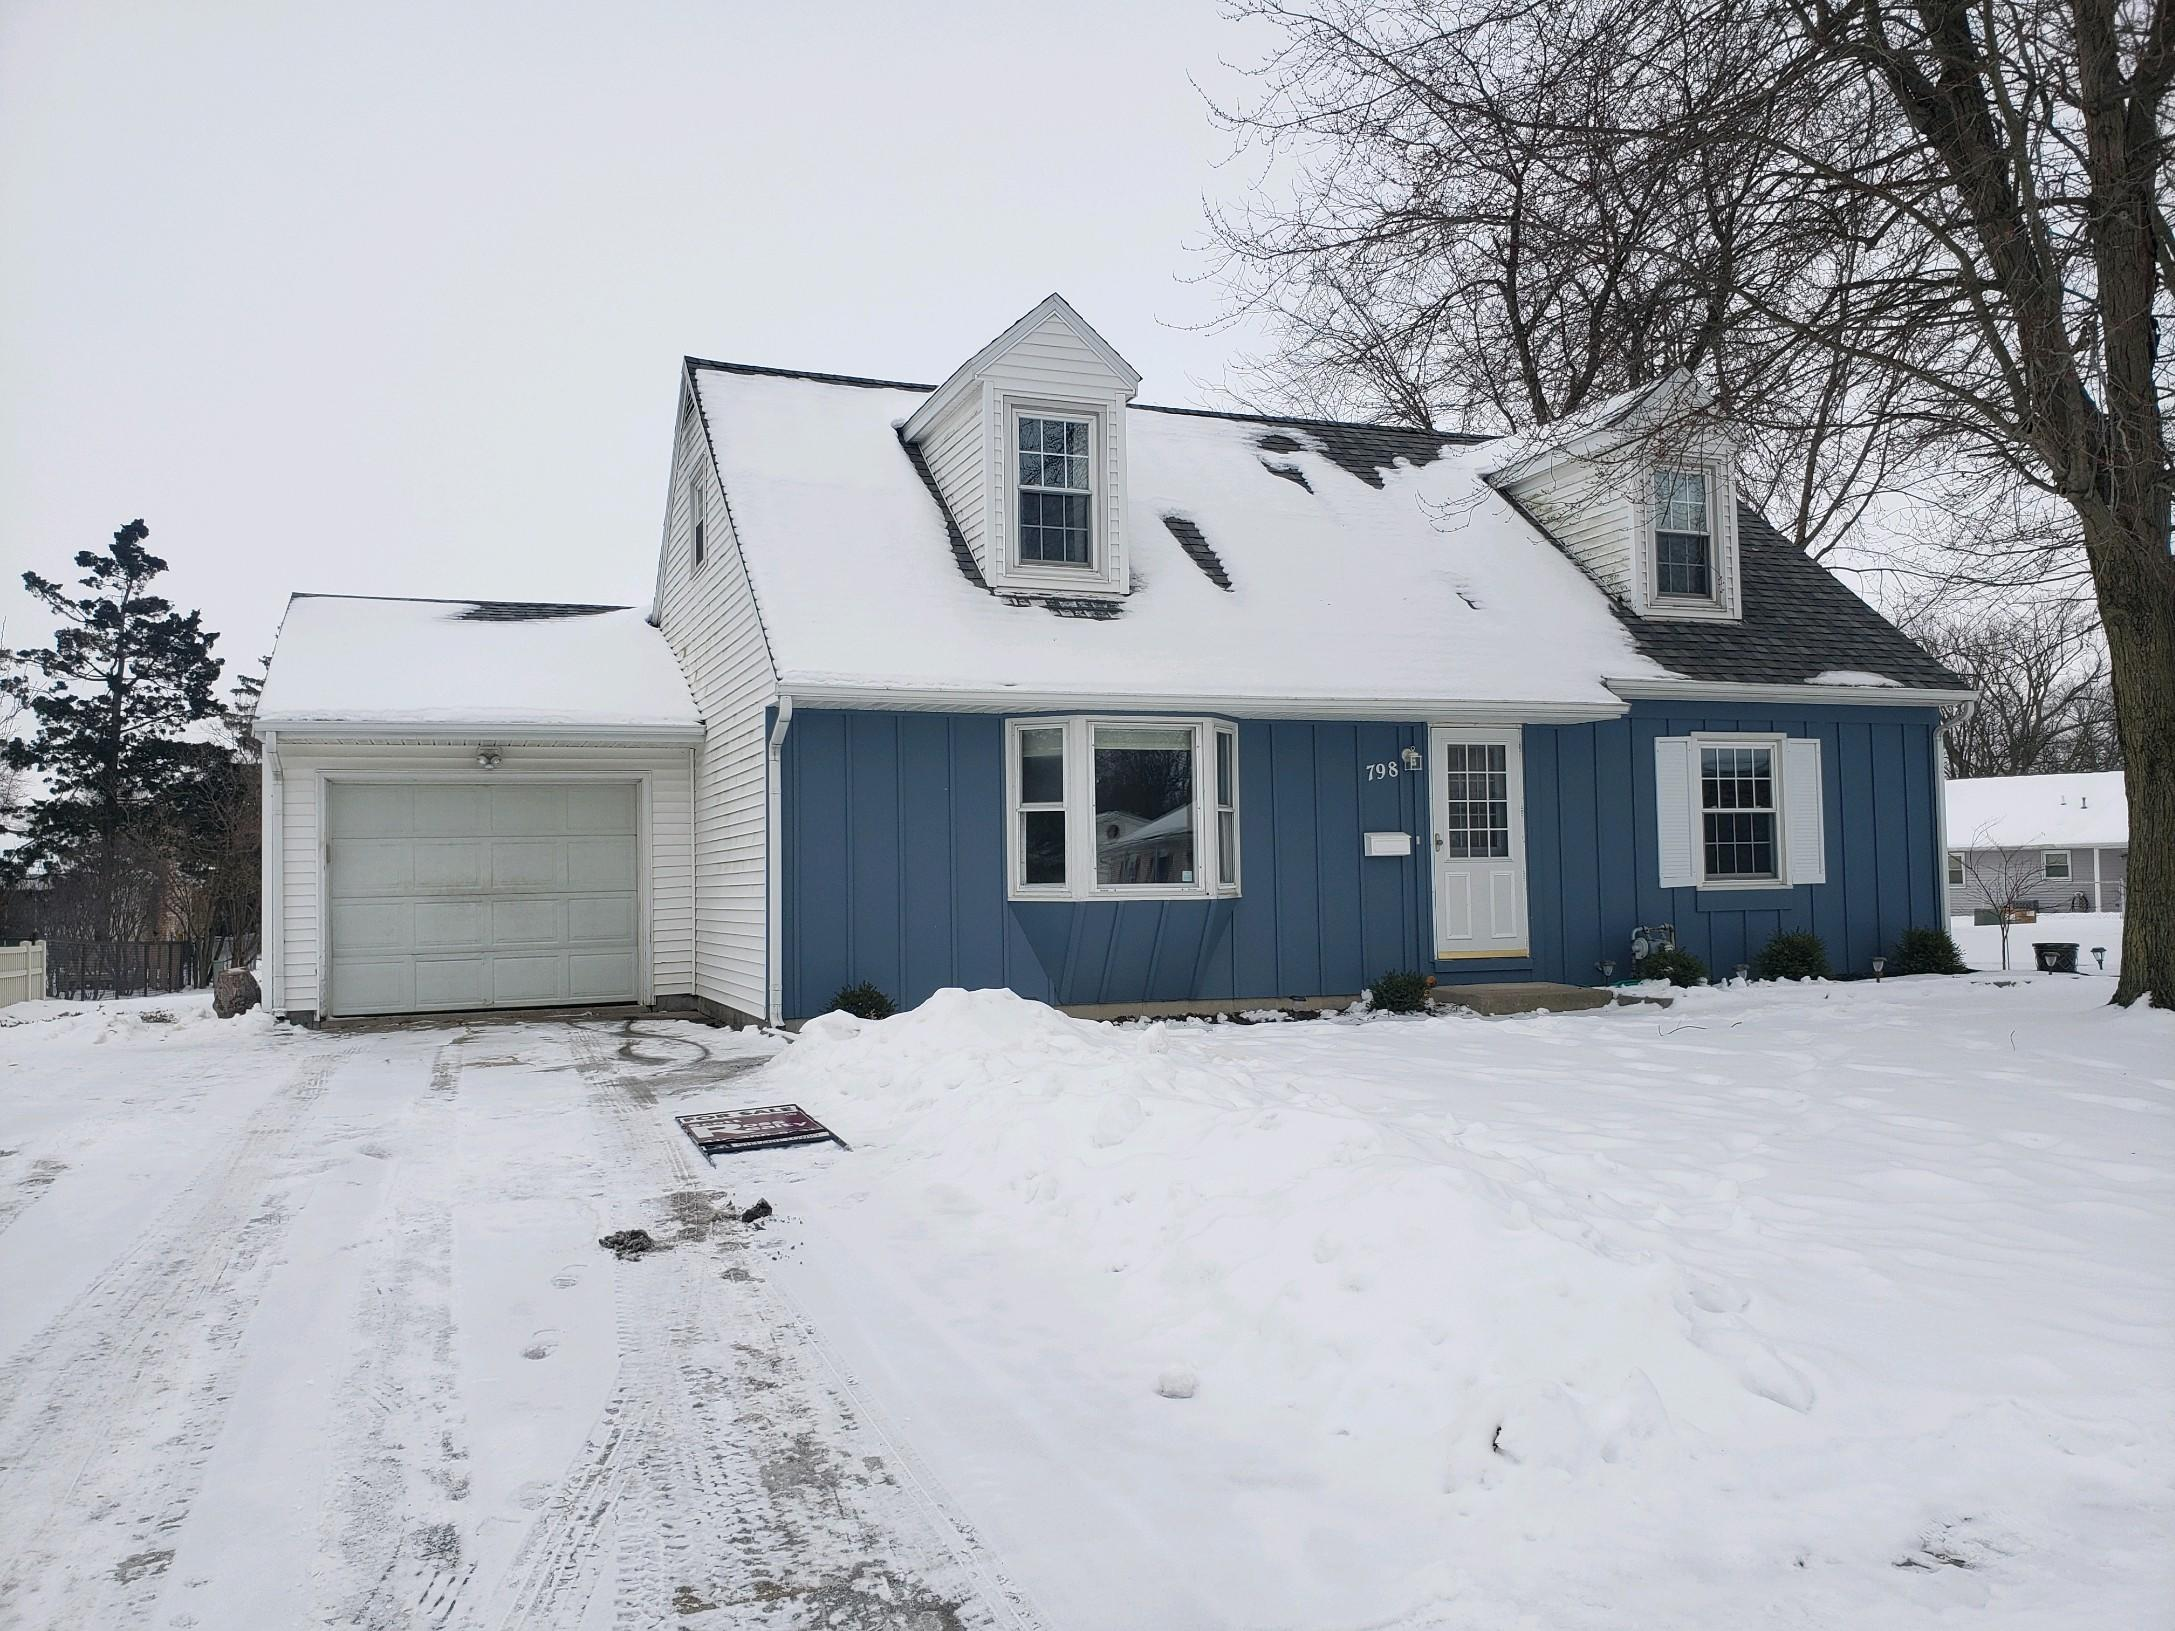 798 Coventry Property Photo - Saint Marys, OH real estate listing